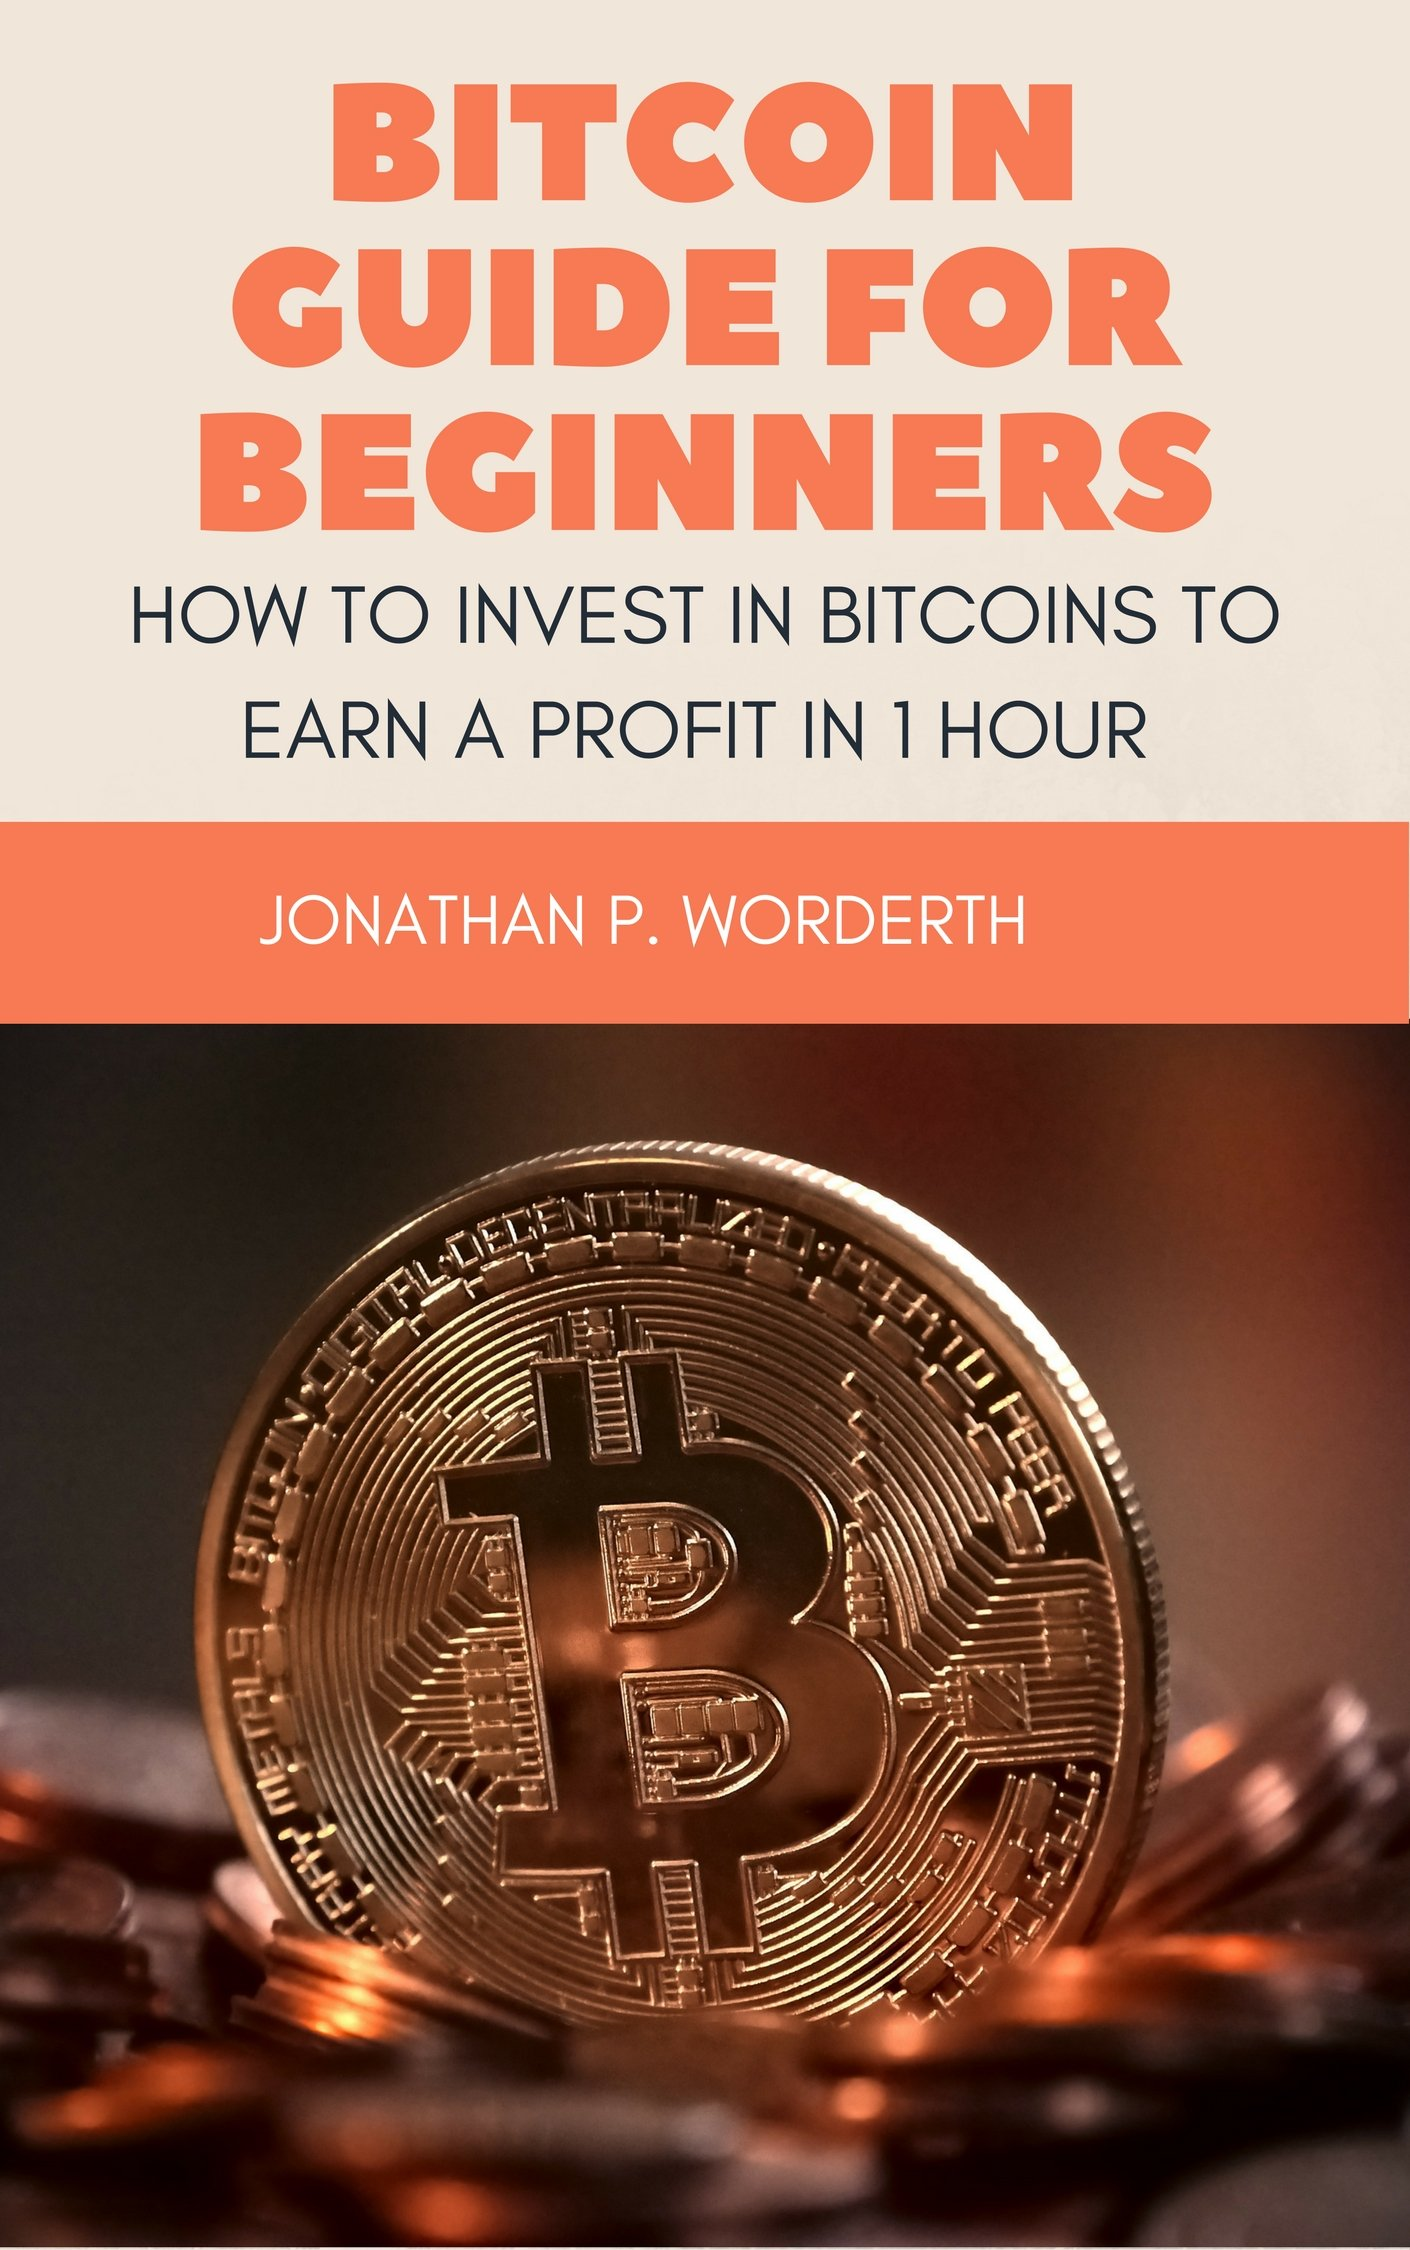 Image OfBitcoin Guide For Beginners: How To Invest In Bitcoins To Earn A Profit In 1 Hour